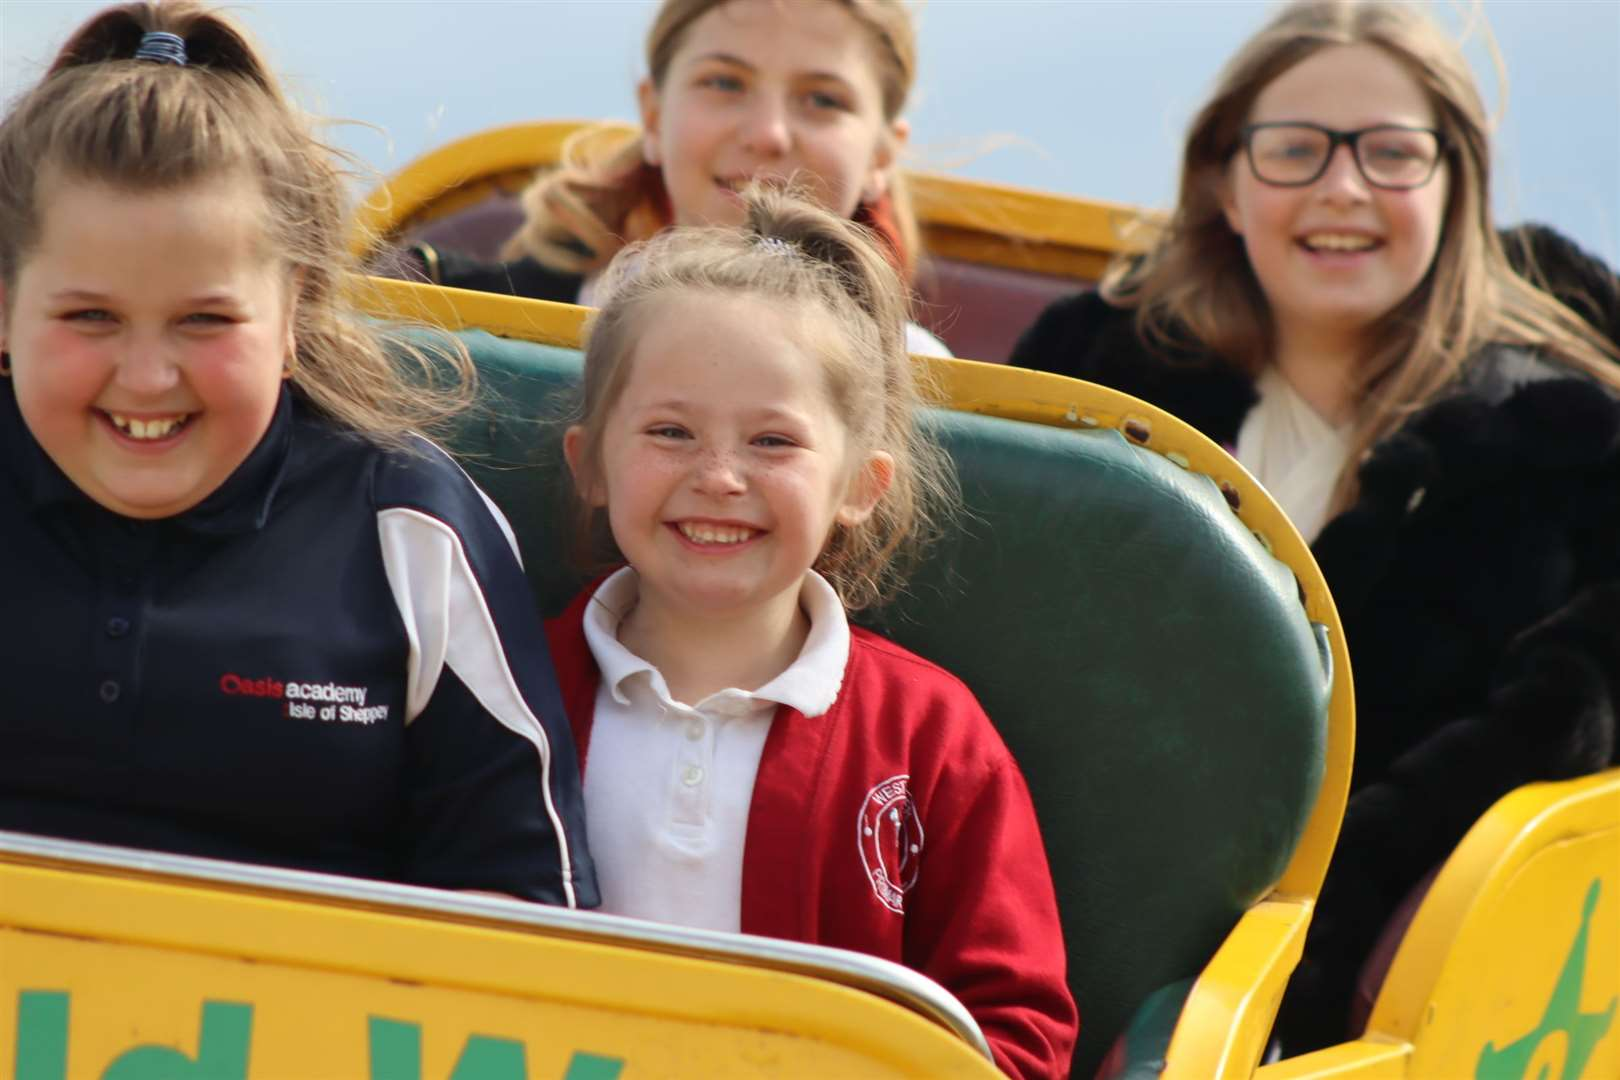 Girls riding the Wild West rollercoaster at Smith's funfair, Barton's Point, Sheerness